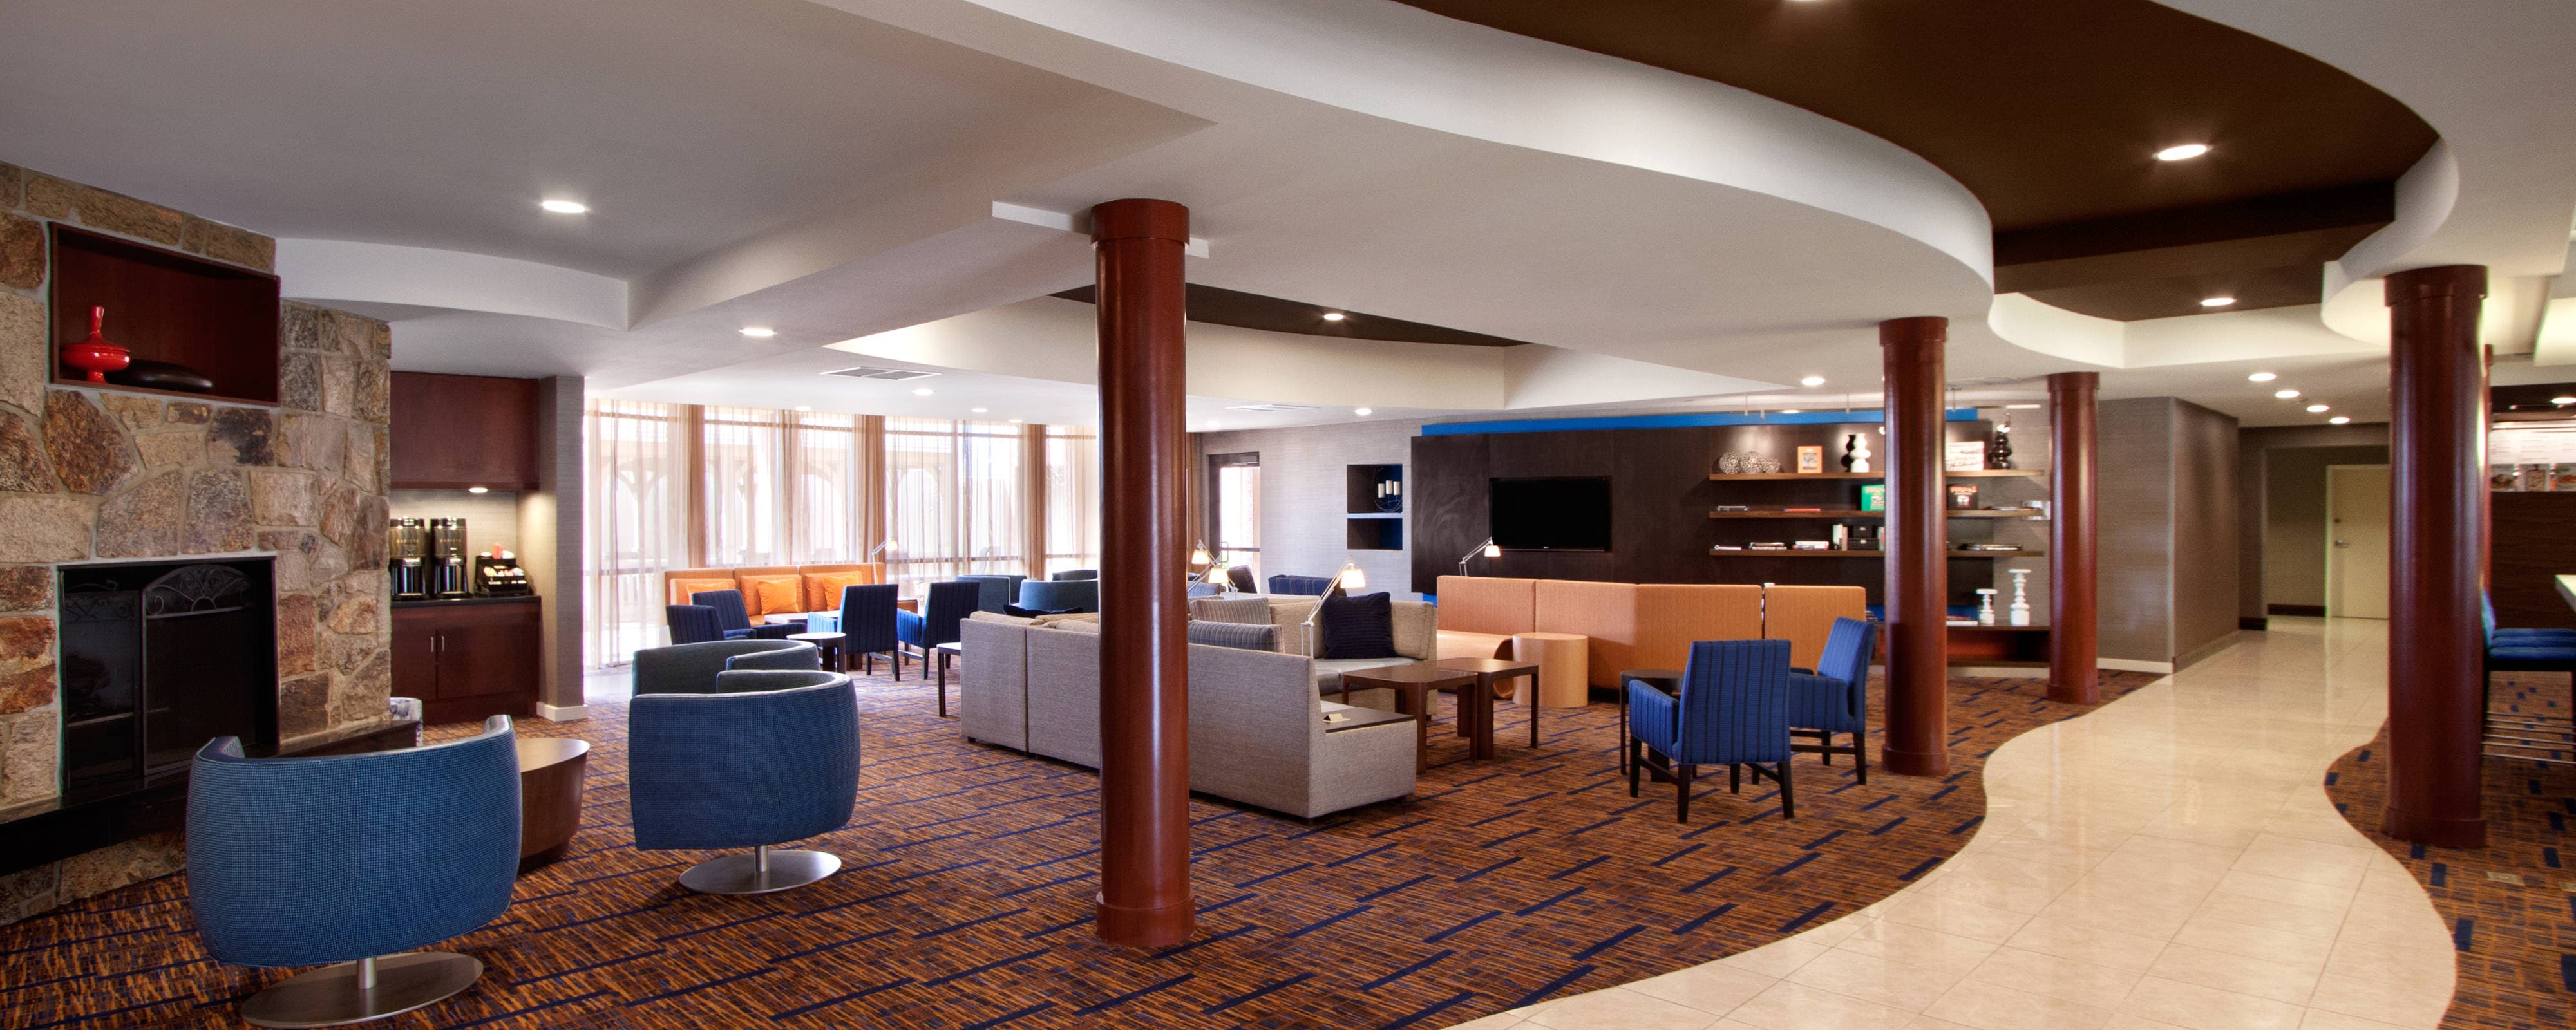 Lobby – Hotels in West Orange, NJ